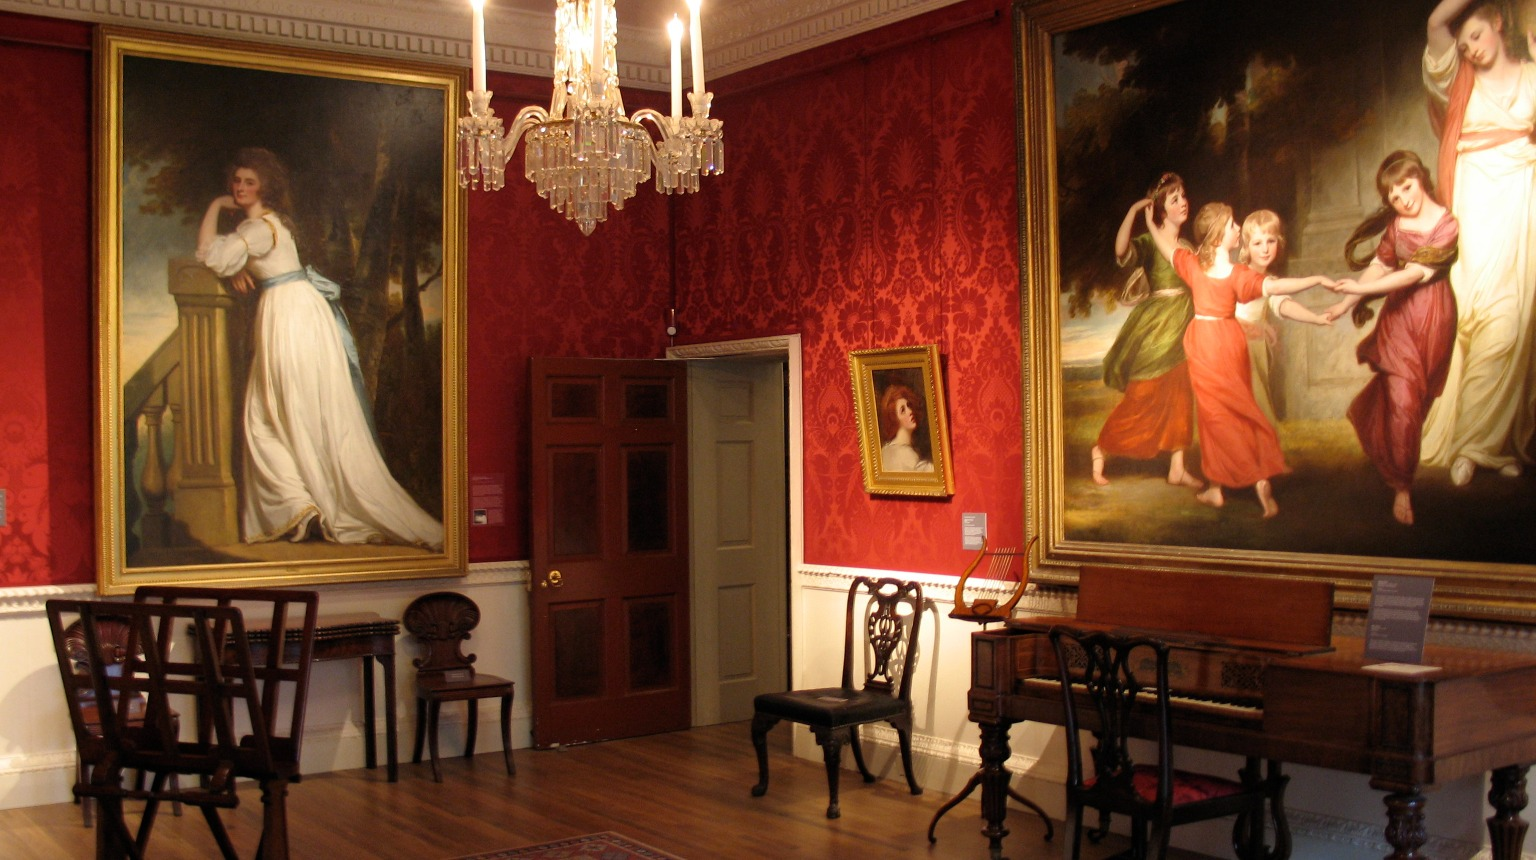 Abbot Hall Art Gallery. George Romney's Gower Family in the Saloon.